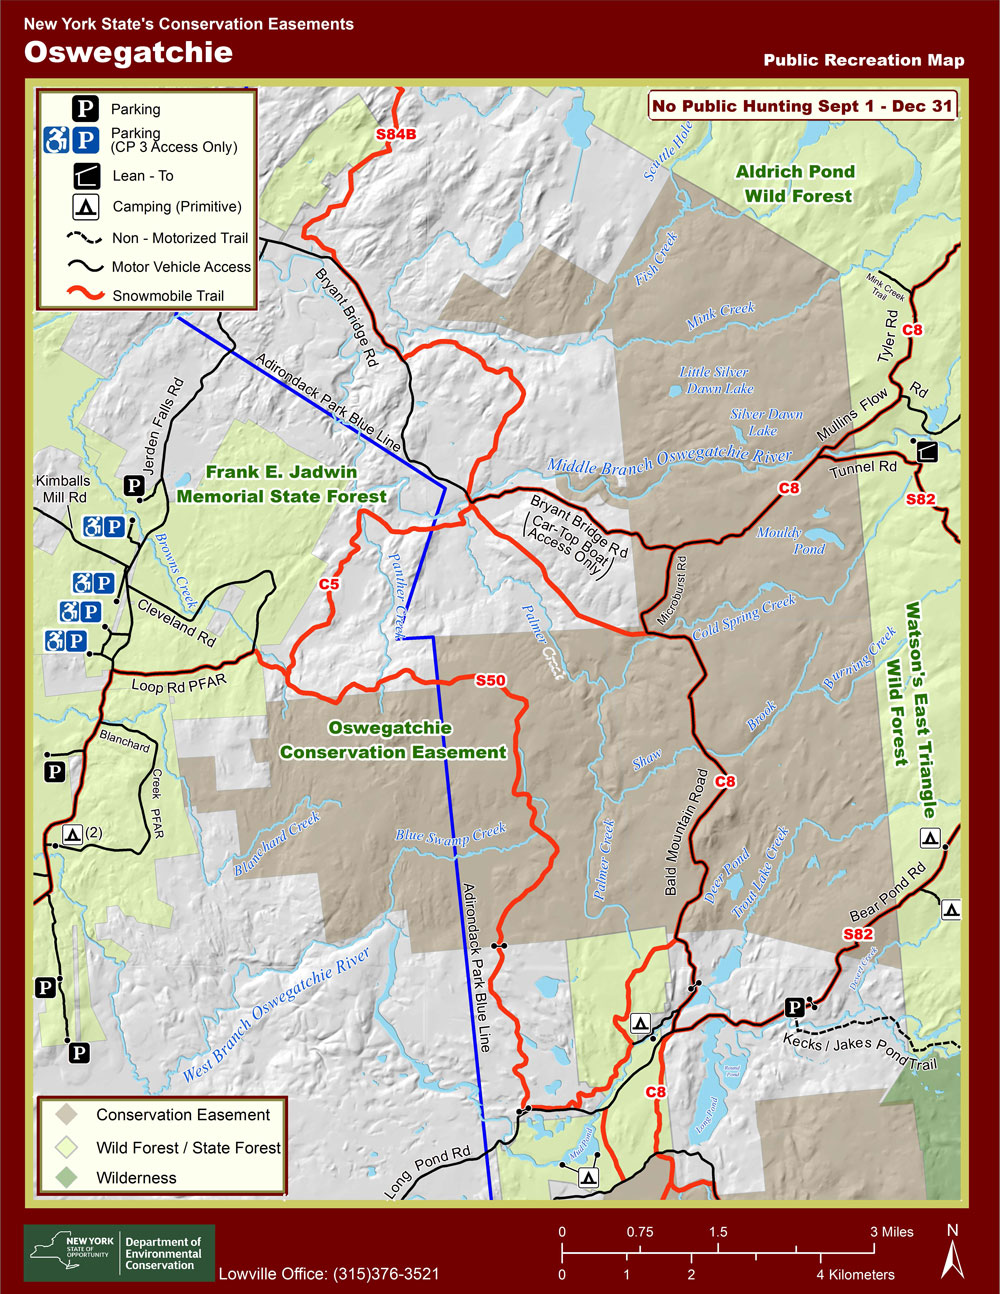 Oswegatchie Conservation Easement Location Map